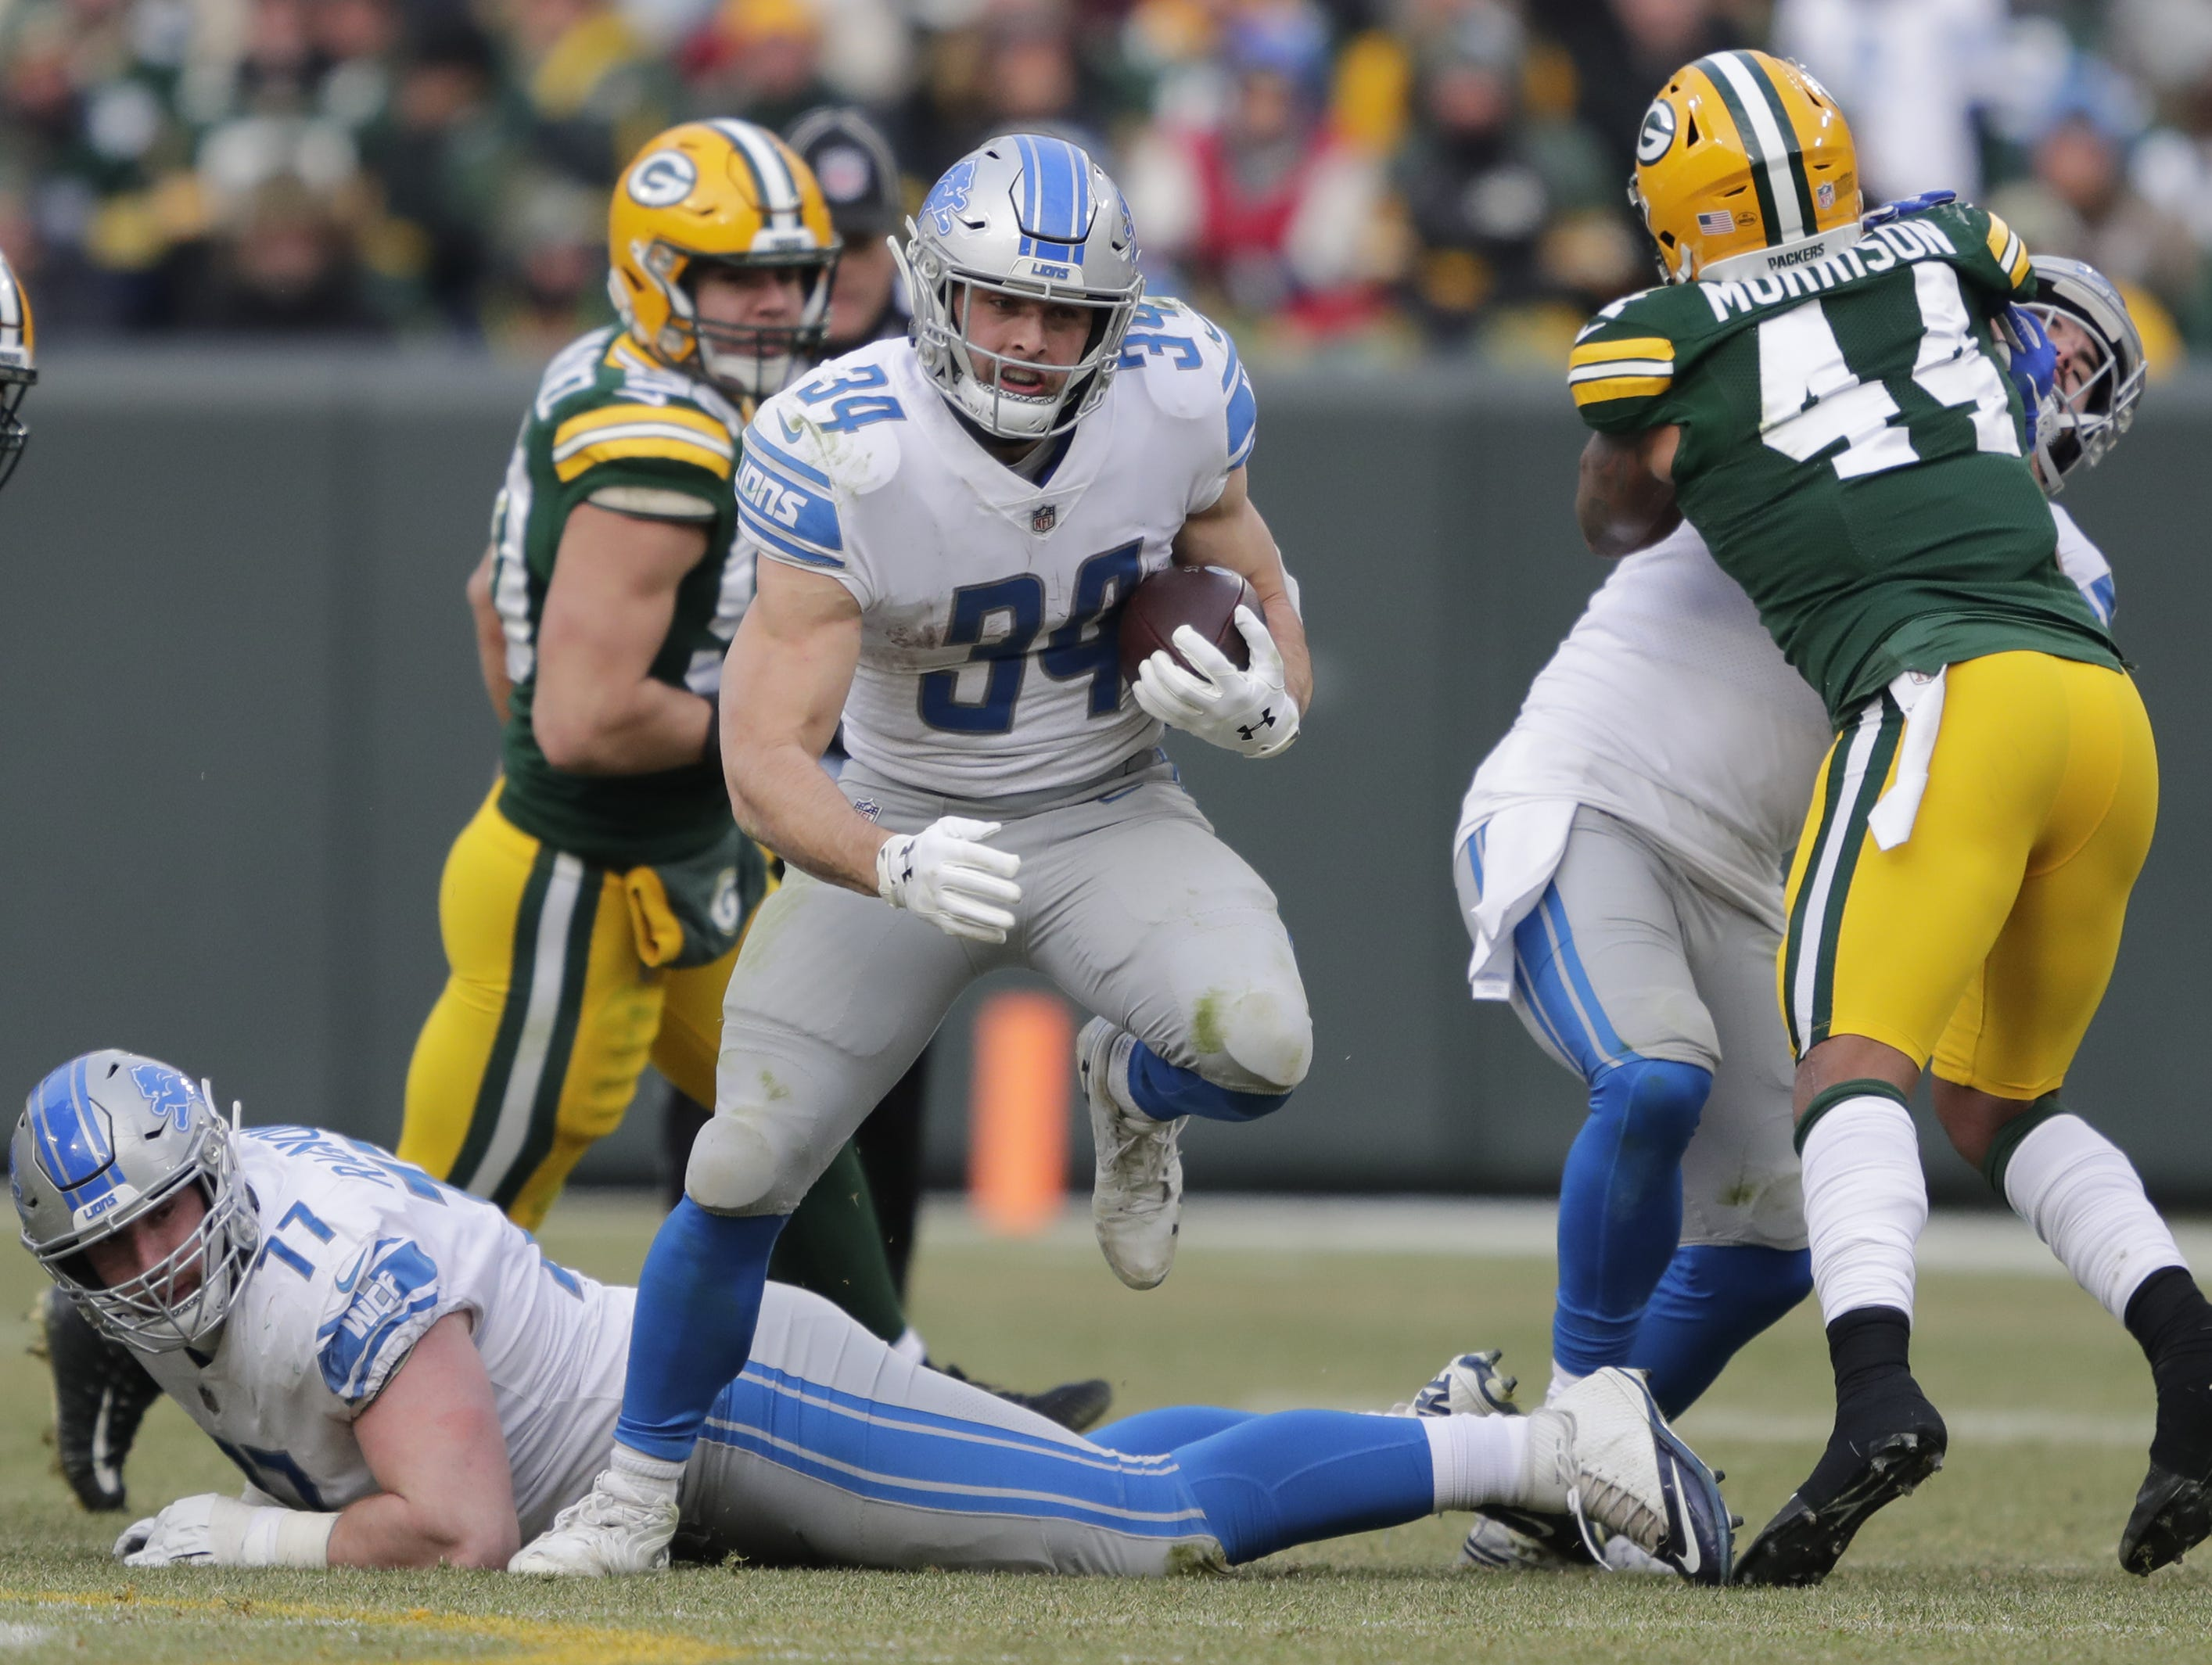 Detroit Lions running back Zach Zenner (34) breaks through a hole in the Green Bay Packers defense during the fourth quarter Sunday, December 30, 2018, at Lambeau Field in Green Bay, Wis.  Dan Powers/USA TODAY NETWORK-Wisconsin